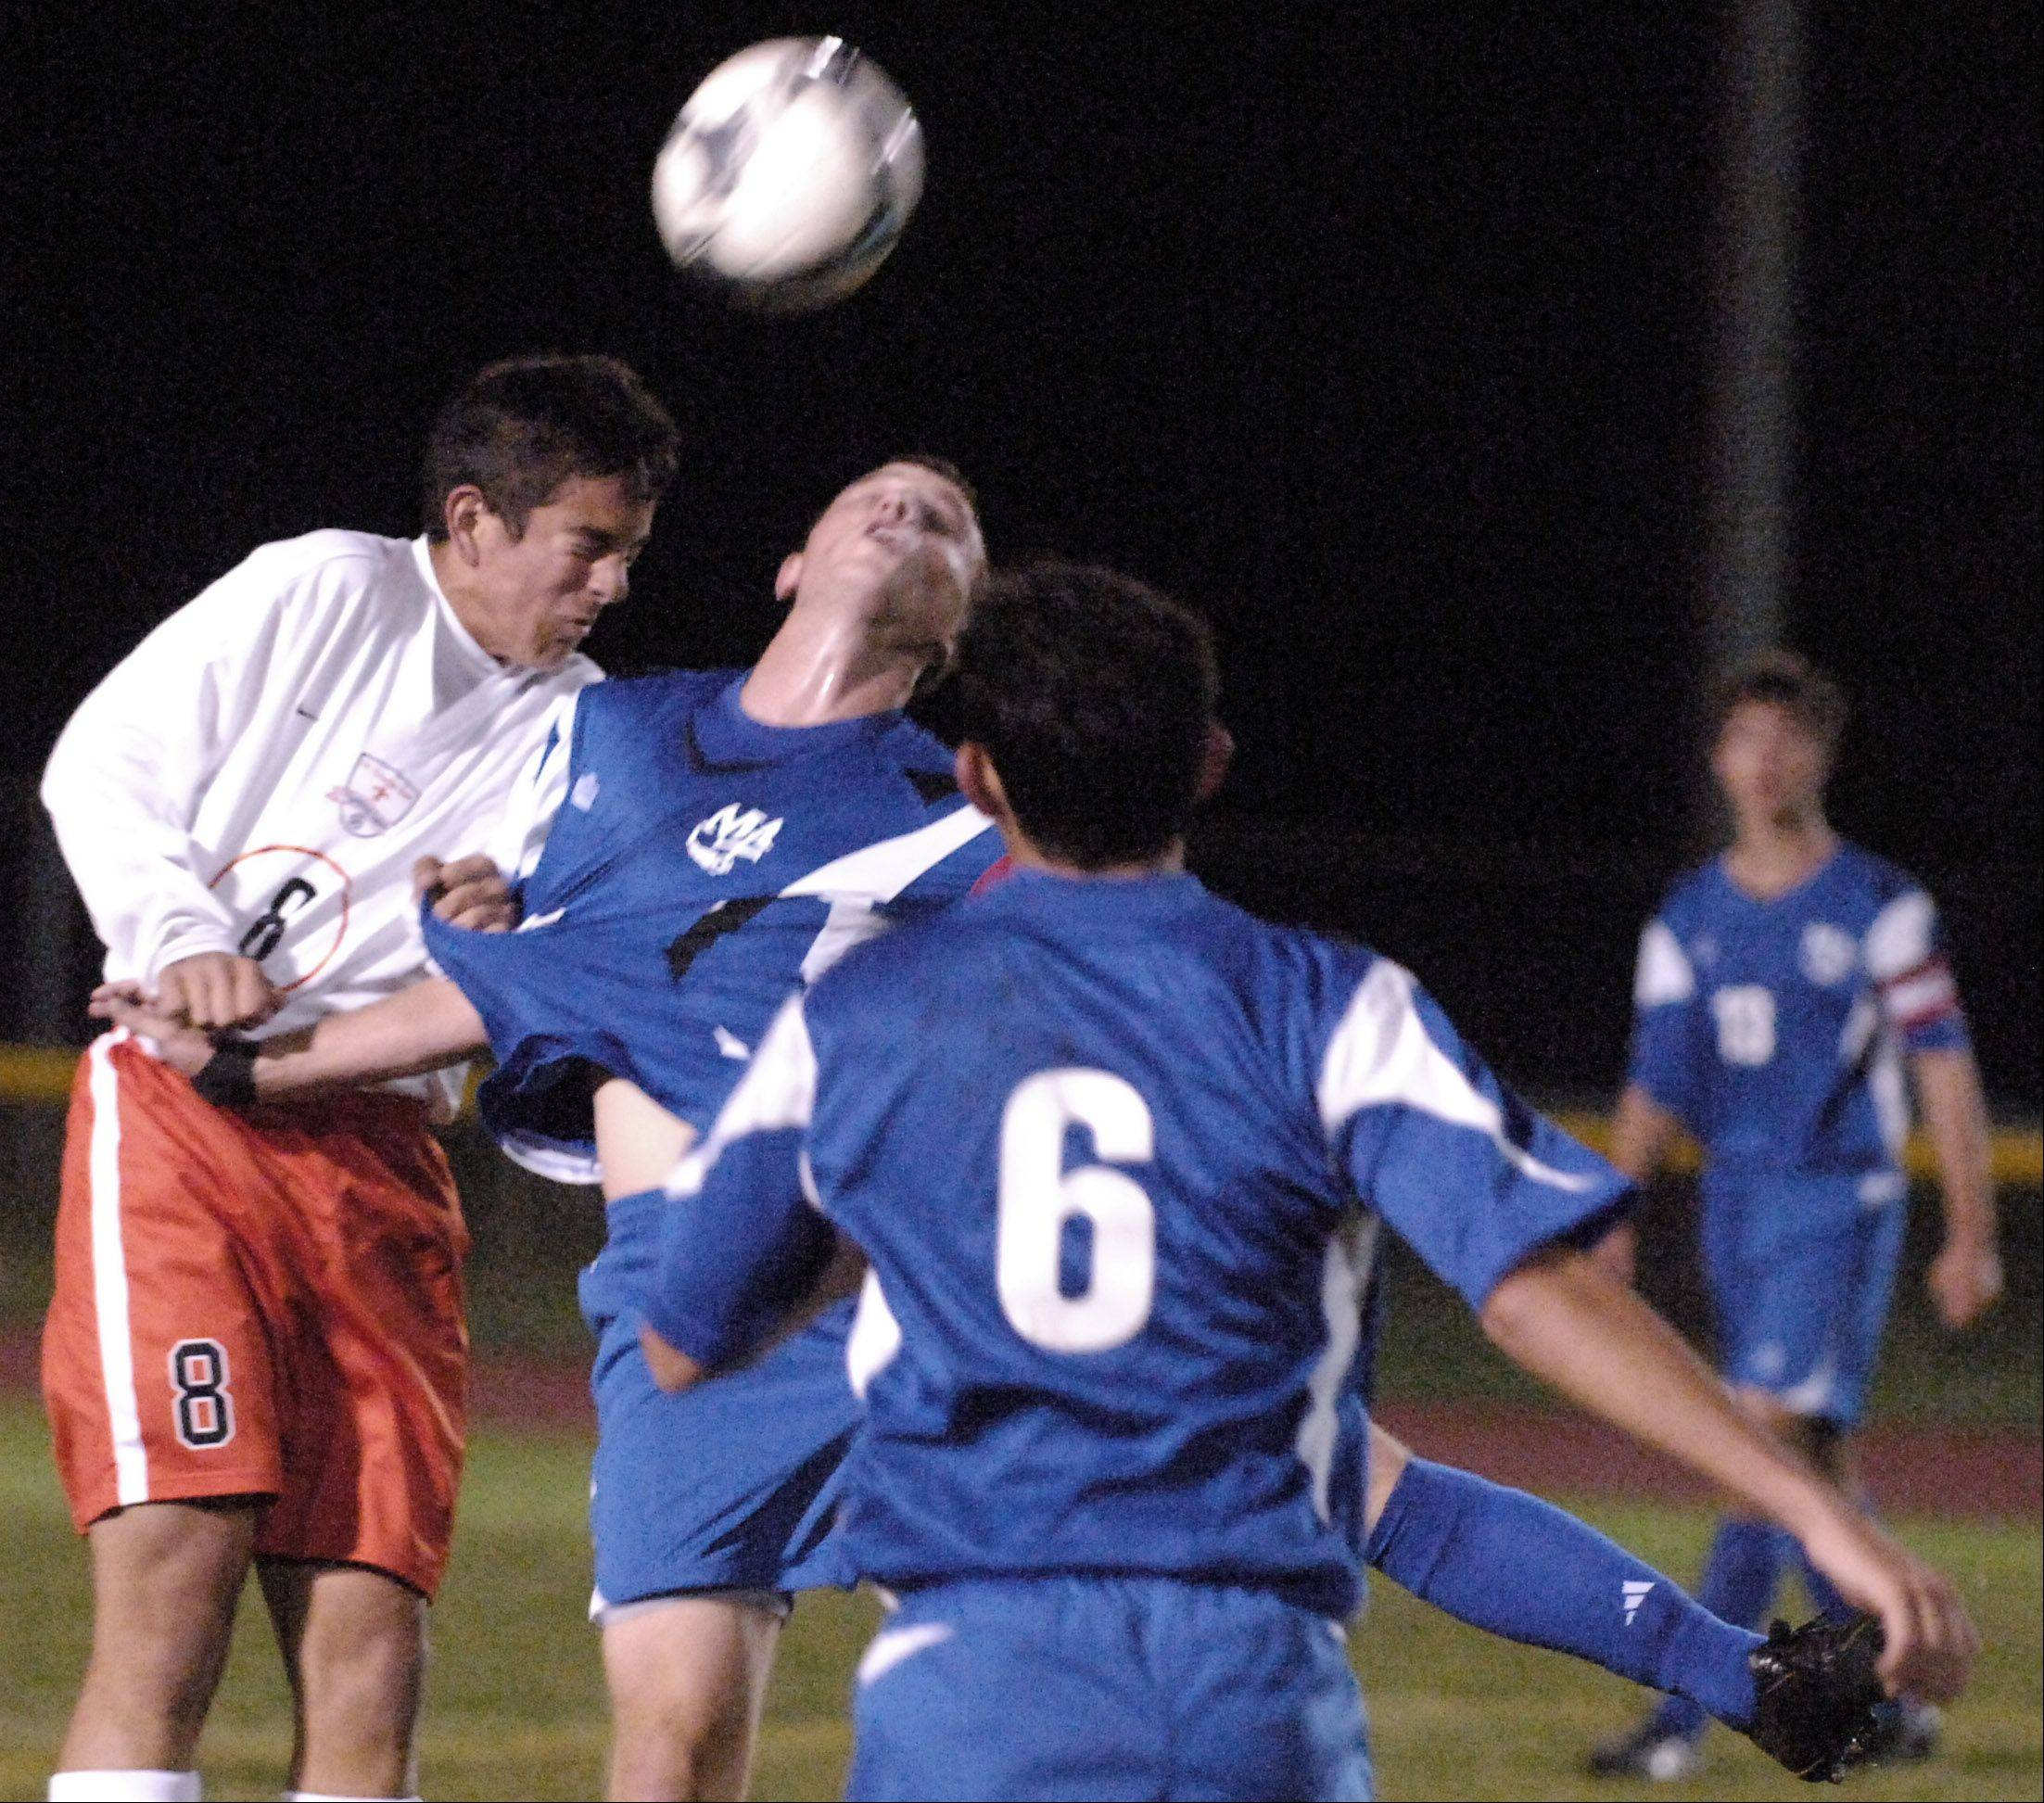 St. Charles East's Michael Macek battles Marmion's Mick Maley for a header during Thursday's action at the St. Charles East High School varsity soccer tournament.